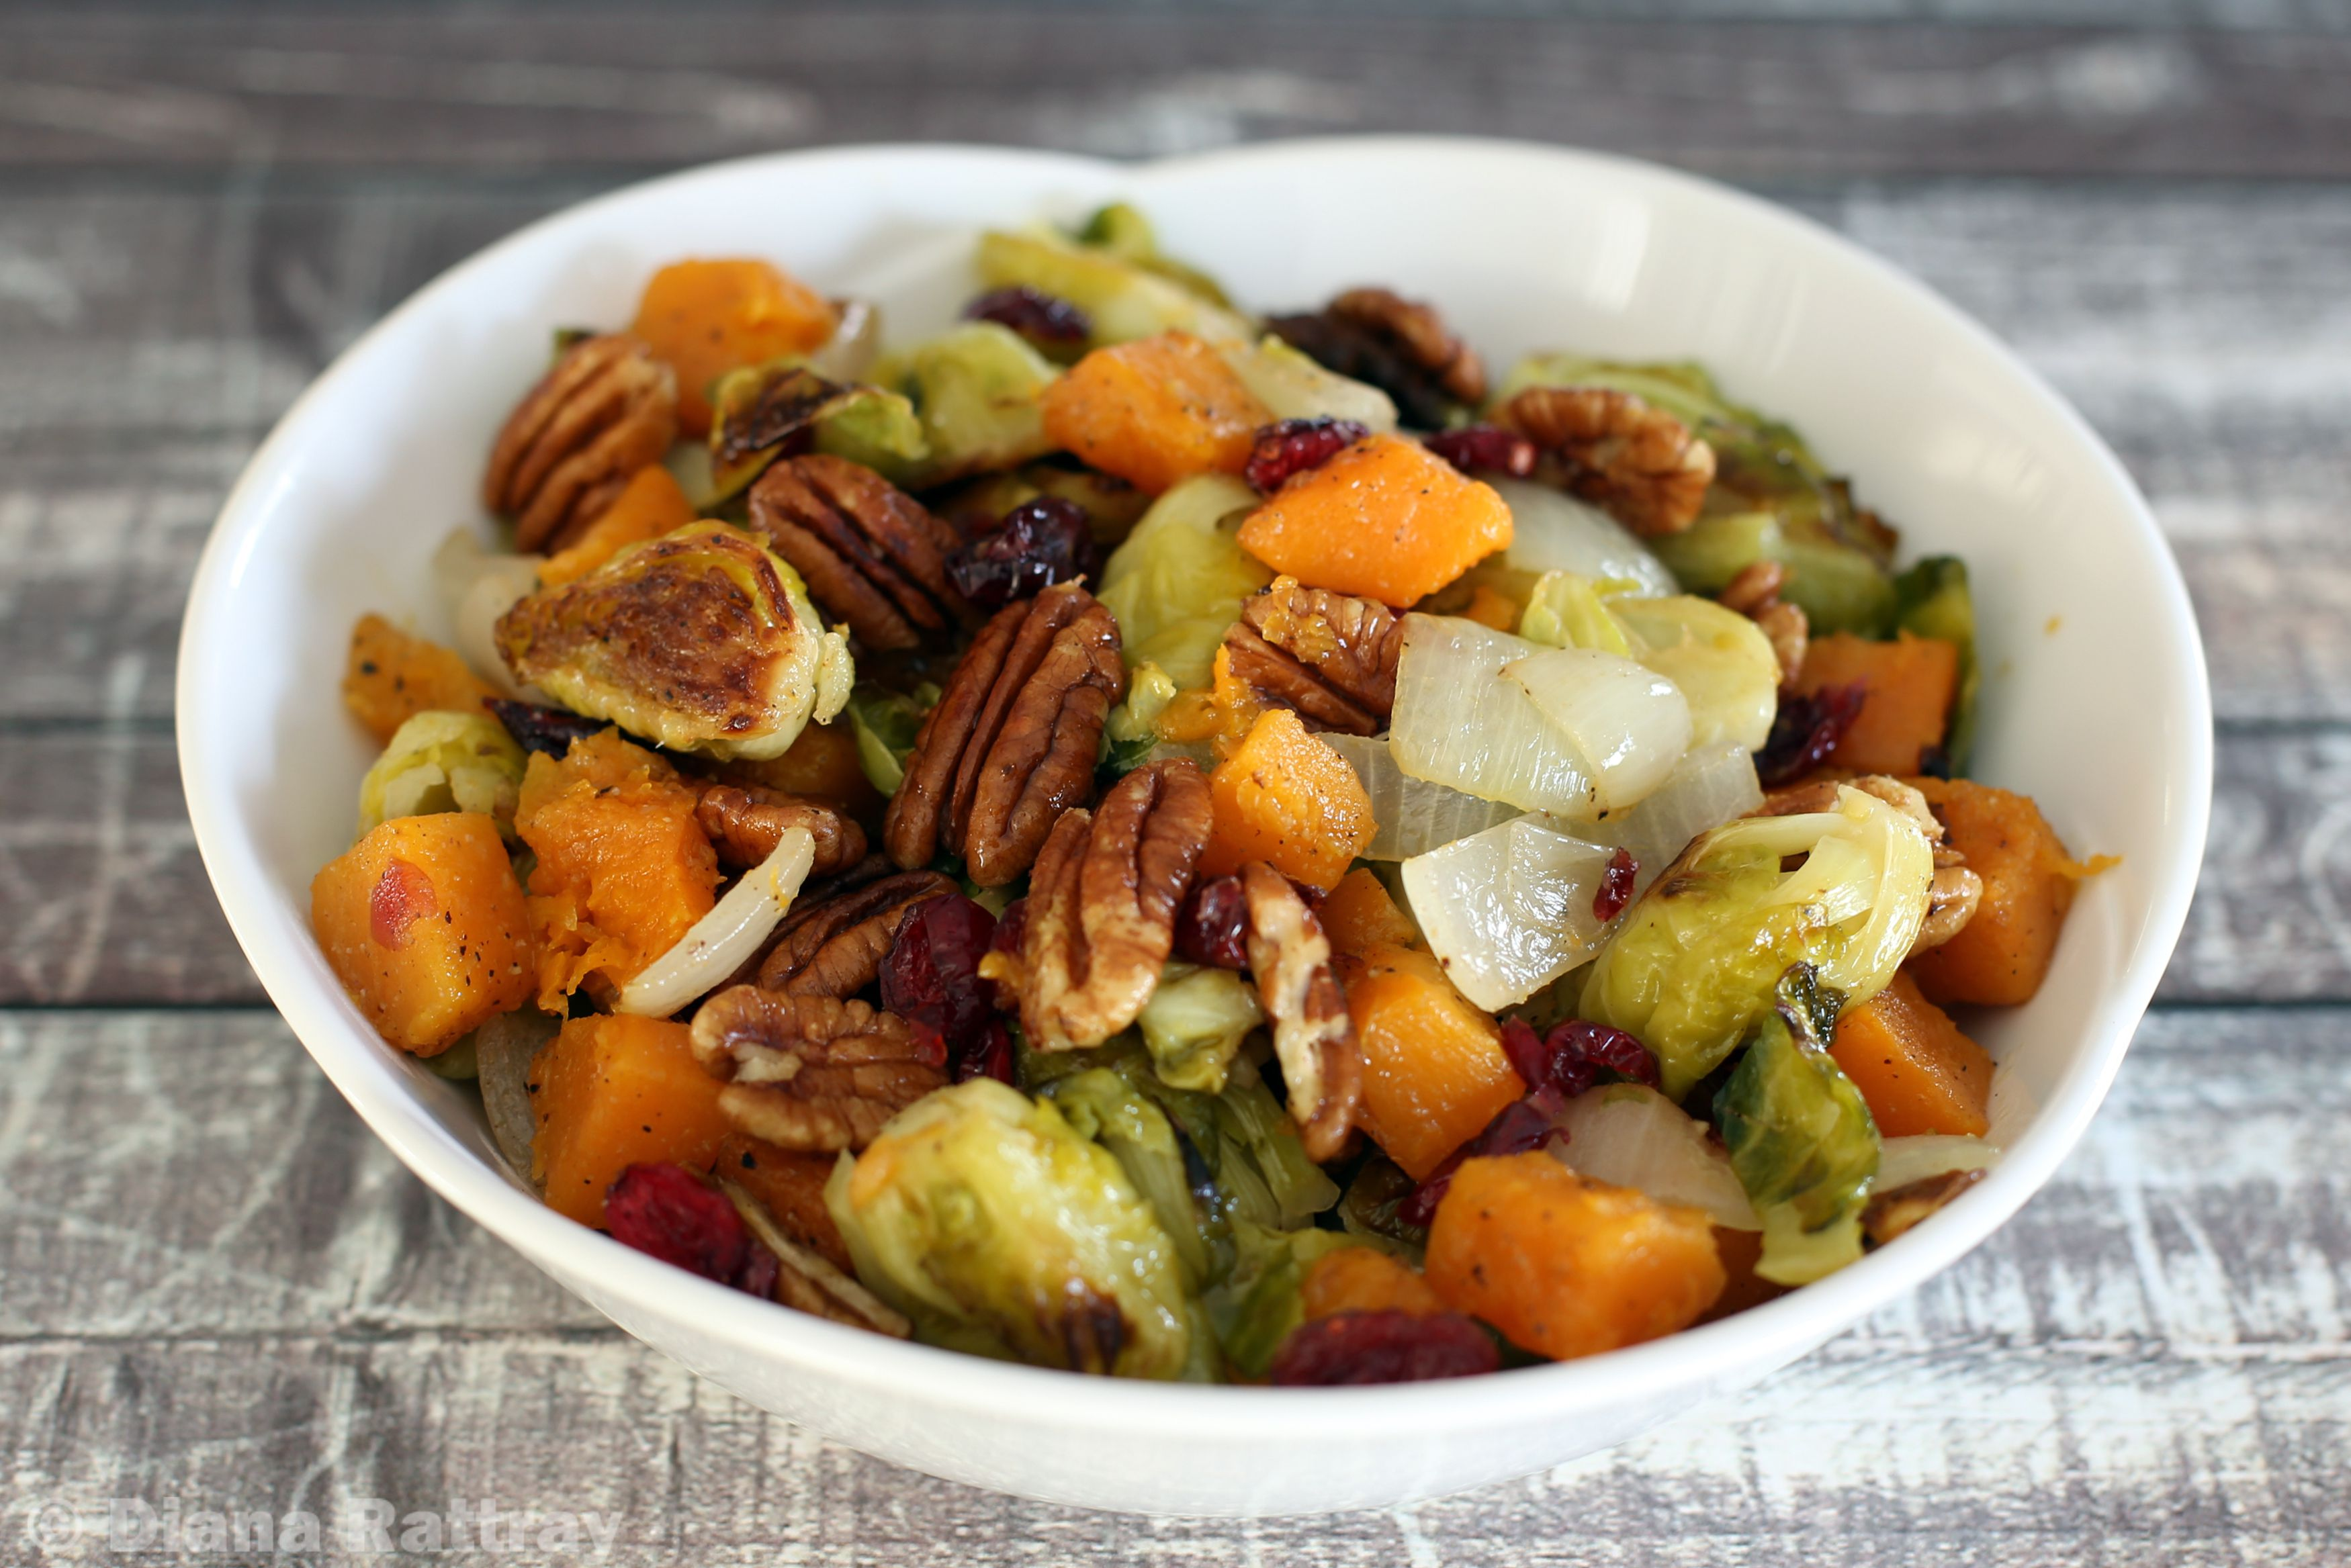 Roasted Brussels Sprouts, Butternut Squash, and Cranberries Recipe